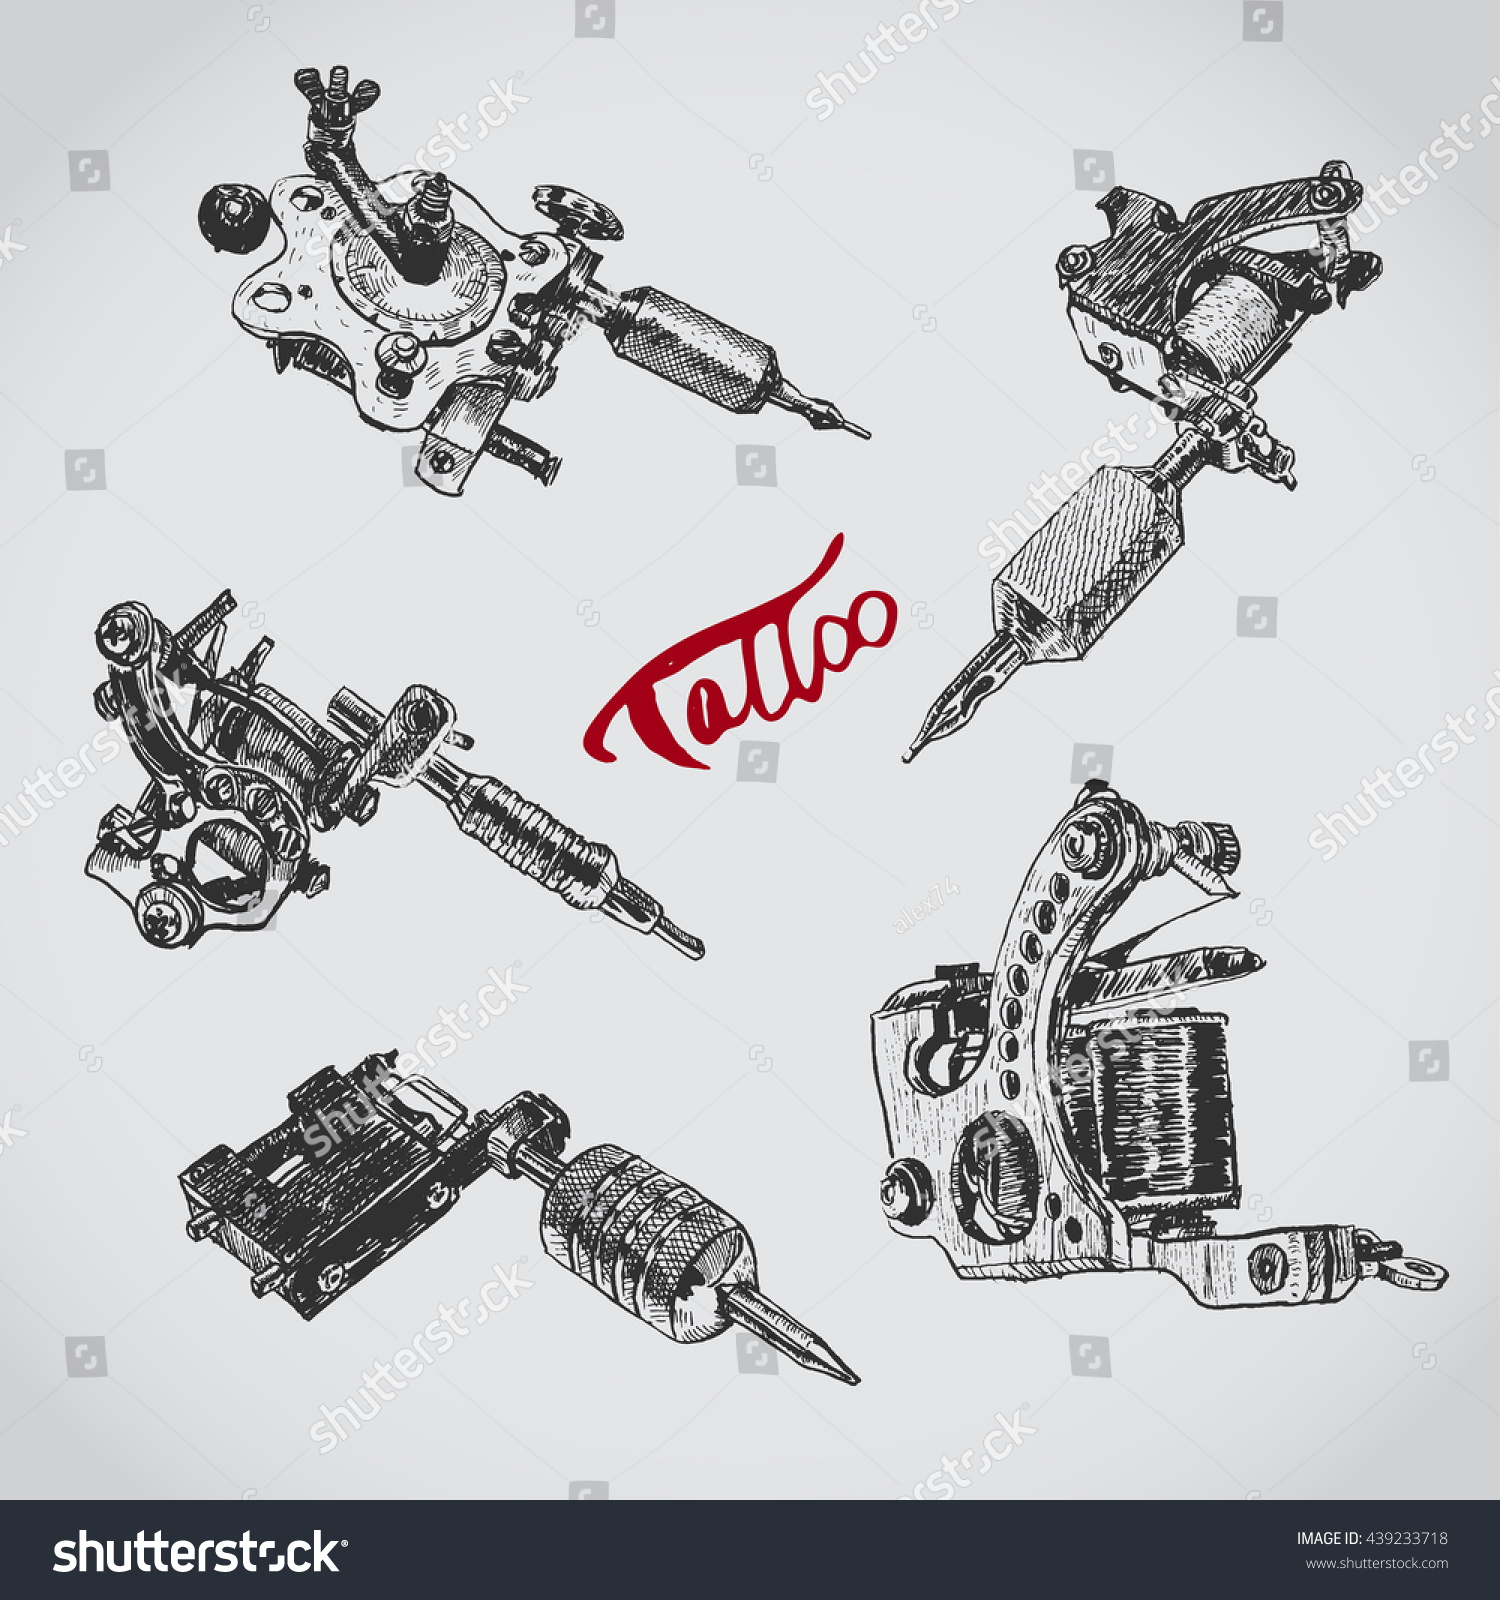 Set Of Different Style Realistic Tattoo Machines Vintage Old School Collection